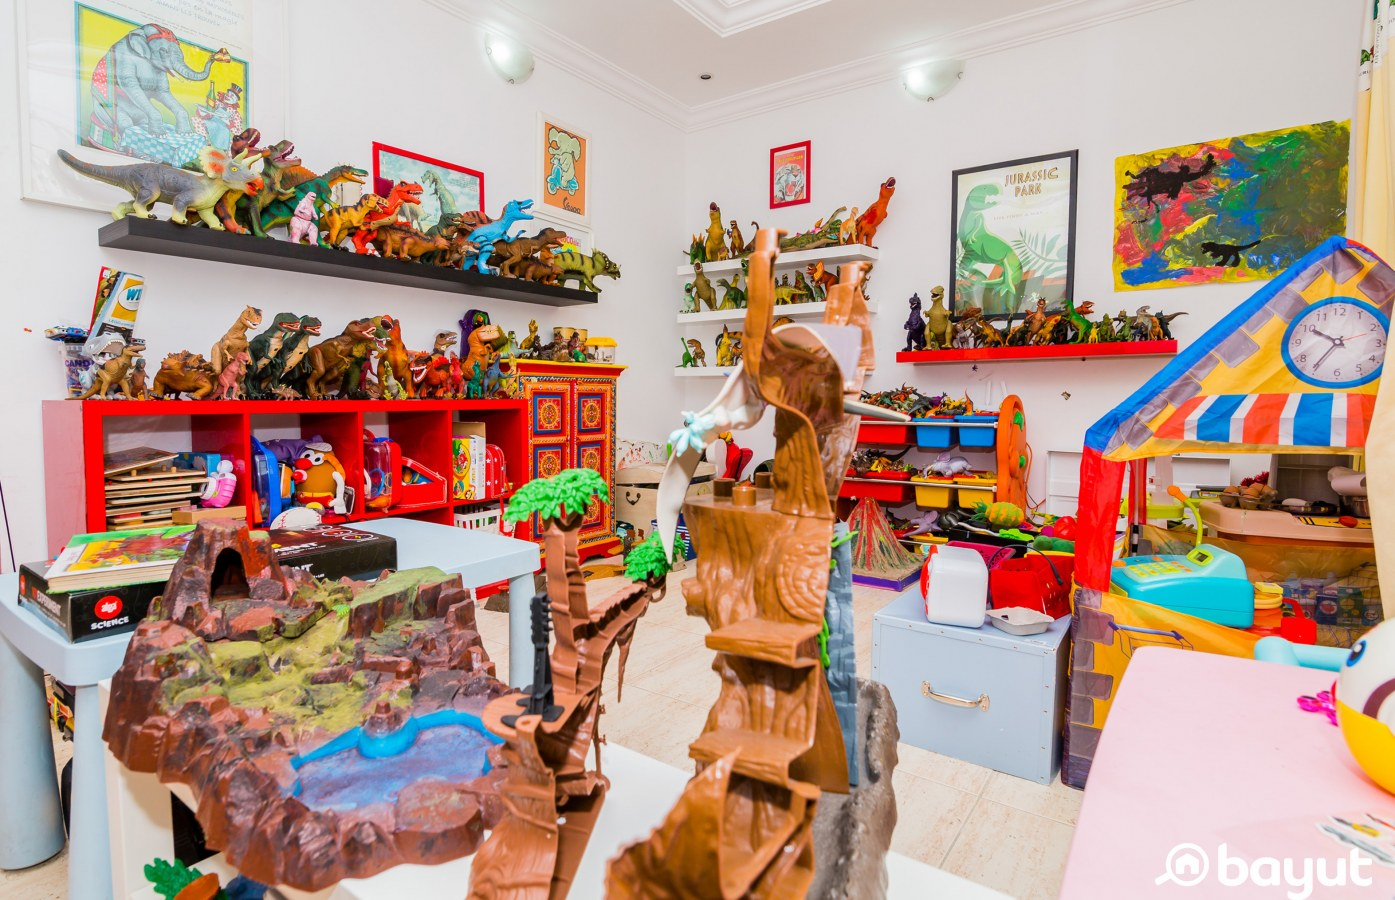 The children's hard play area, filled with dinosaurs, cars and toys